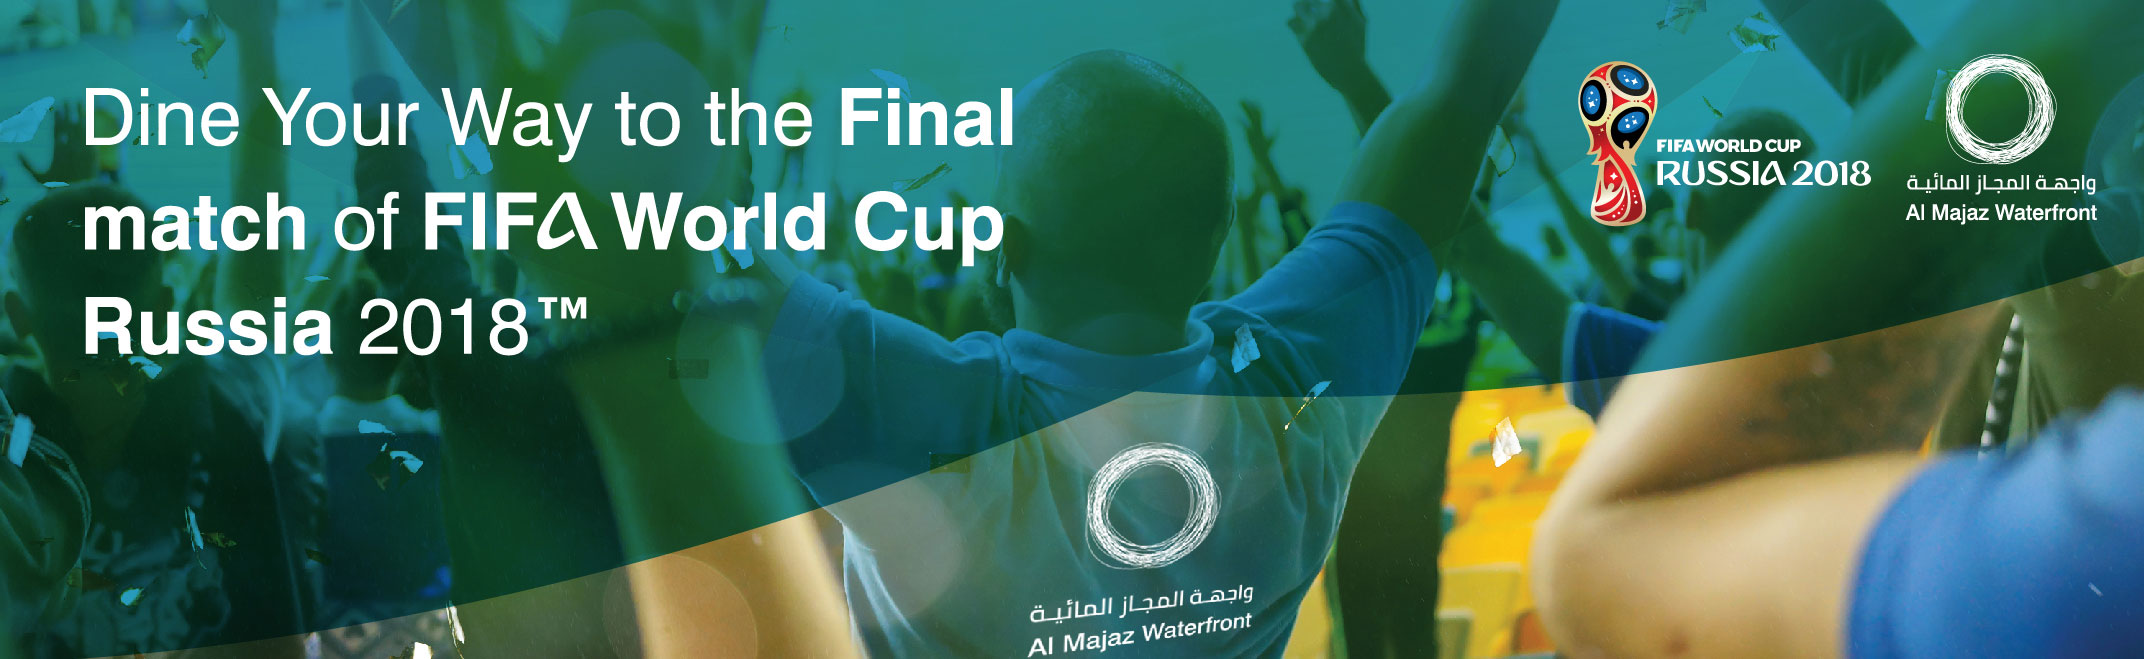 Spend AED 200 in Al Majaz restaurants and cafes to get the chance to win a trip for two to attend the Final Game of the World Cup 2018